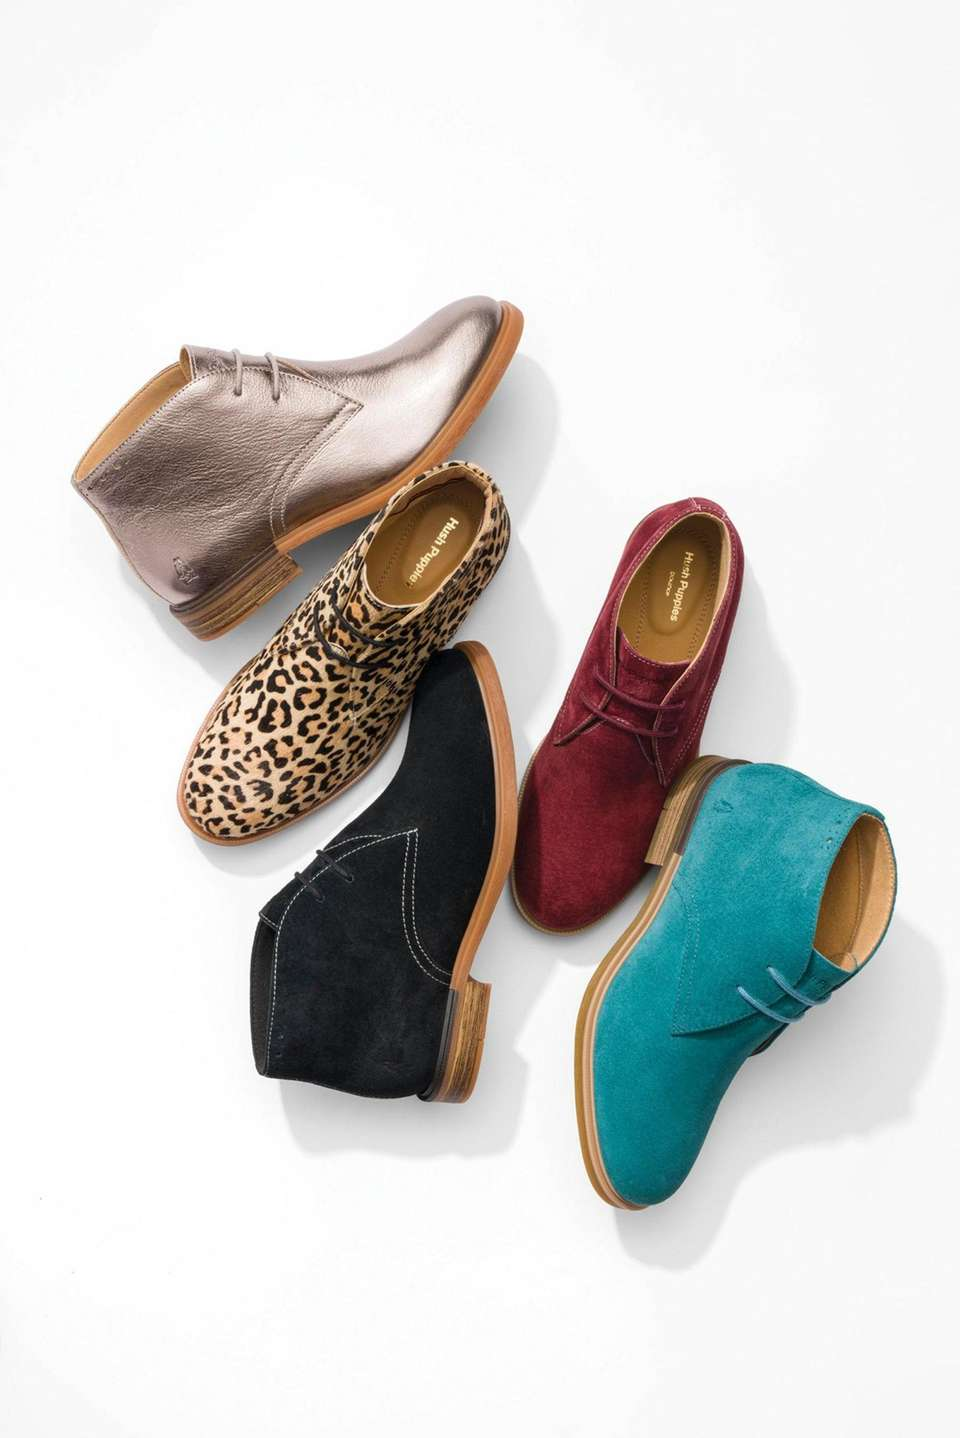 These fun ankle boots are the perfect way